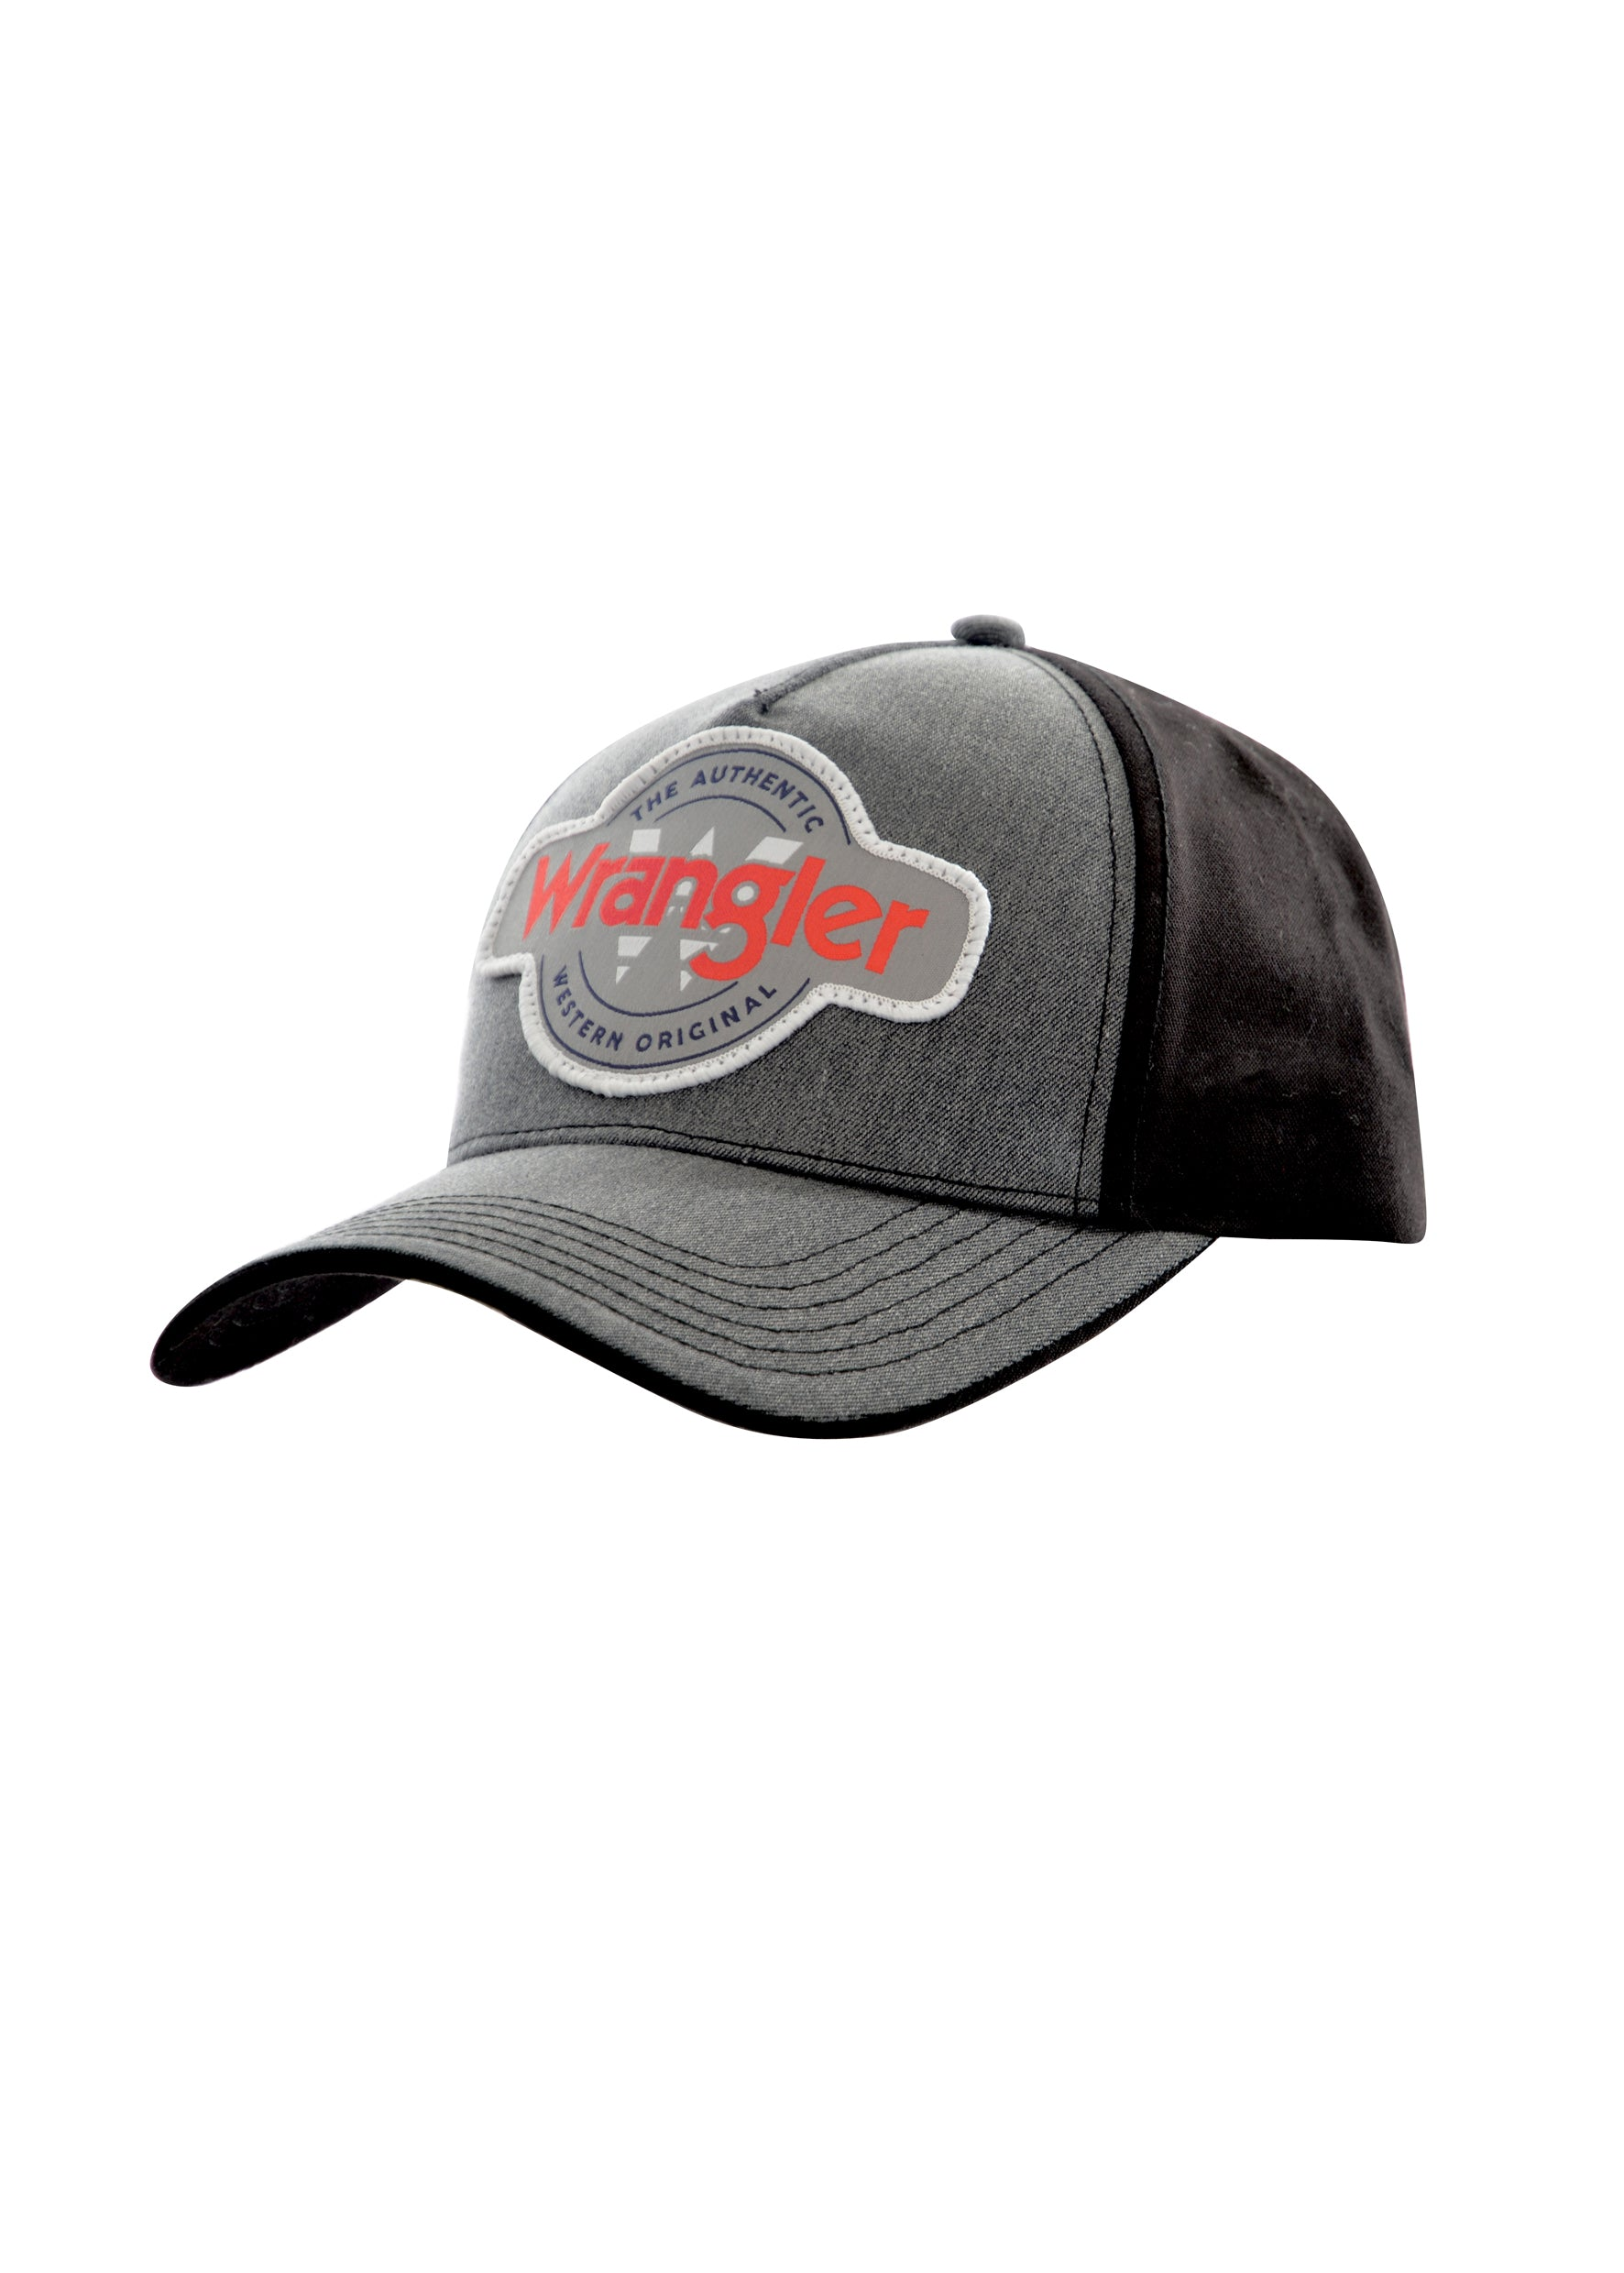 Wrangler Mens Authentic Cap